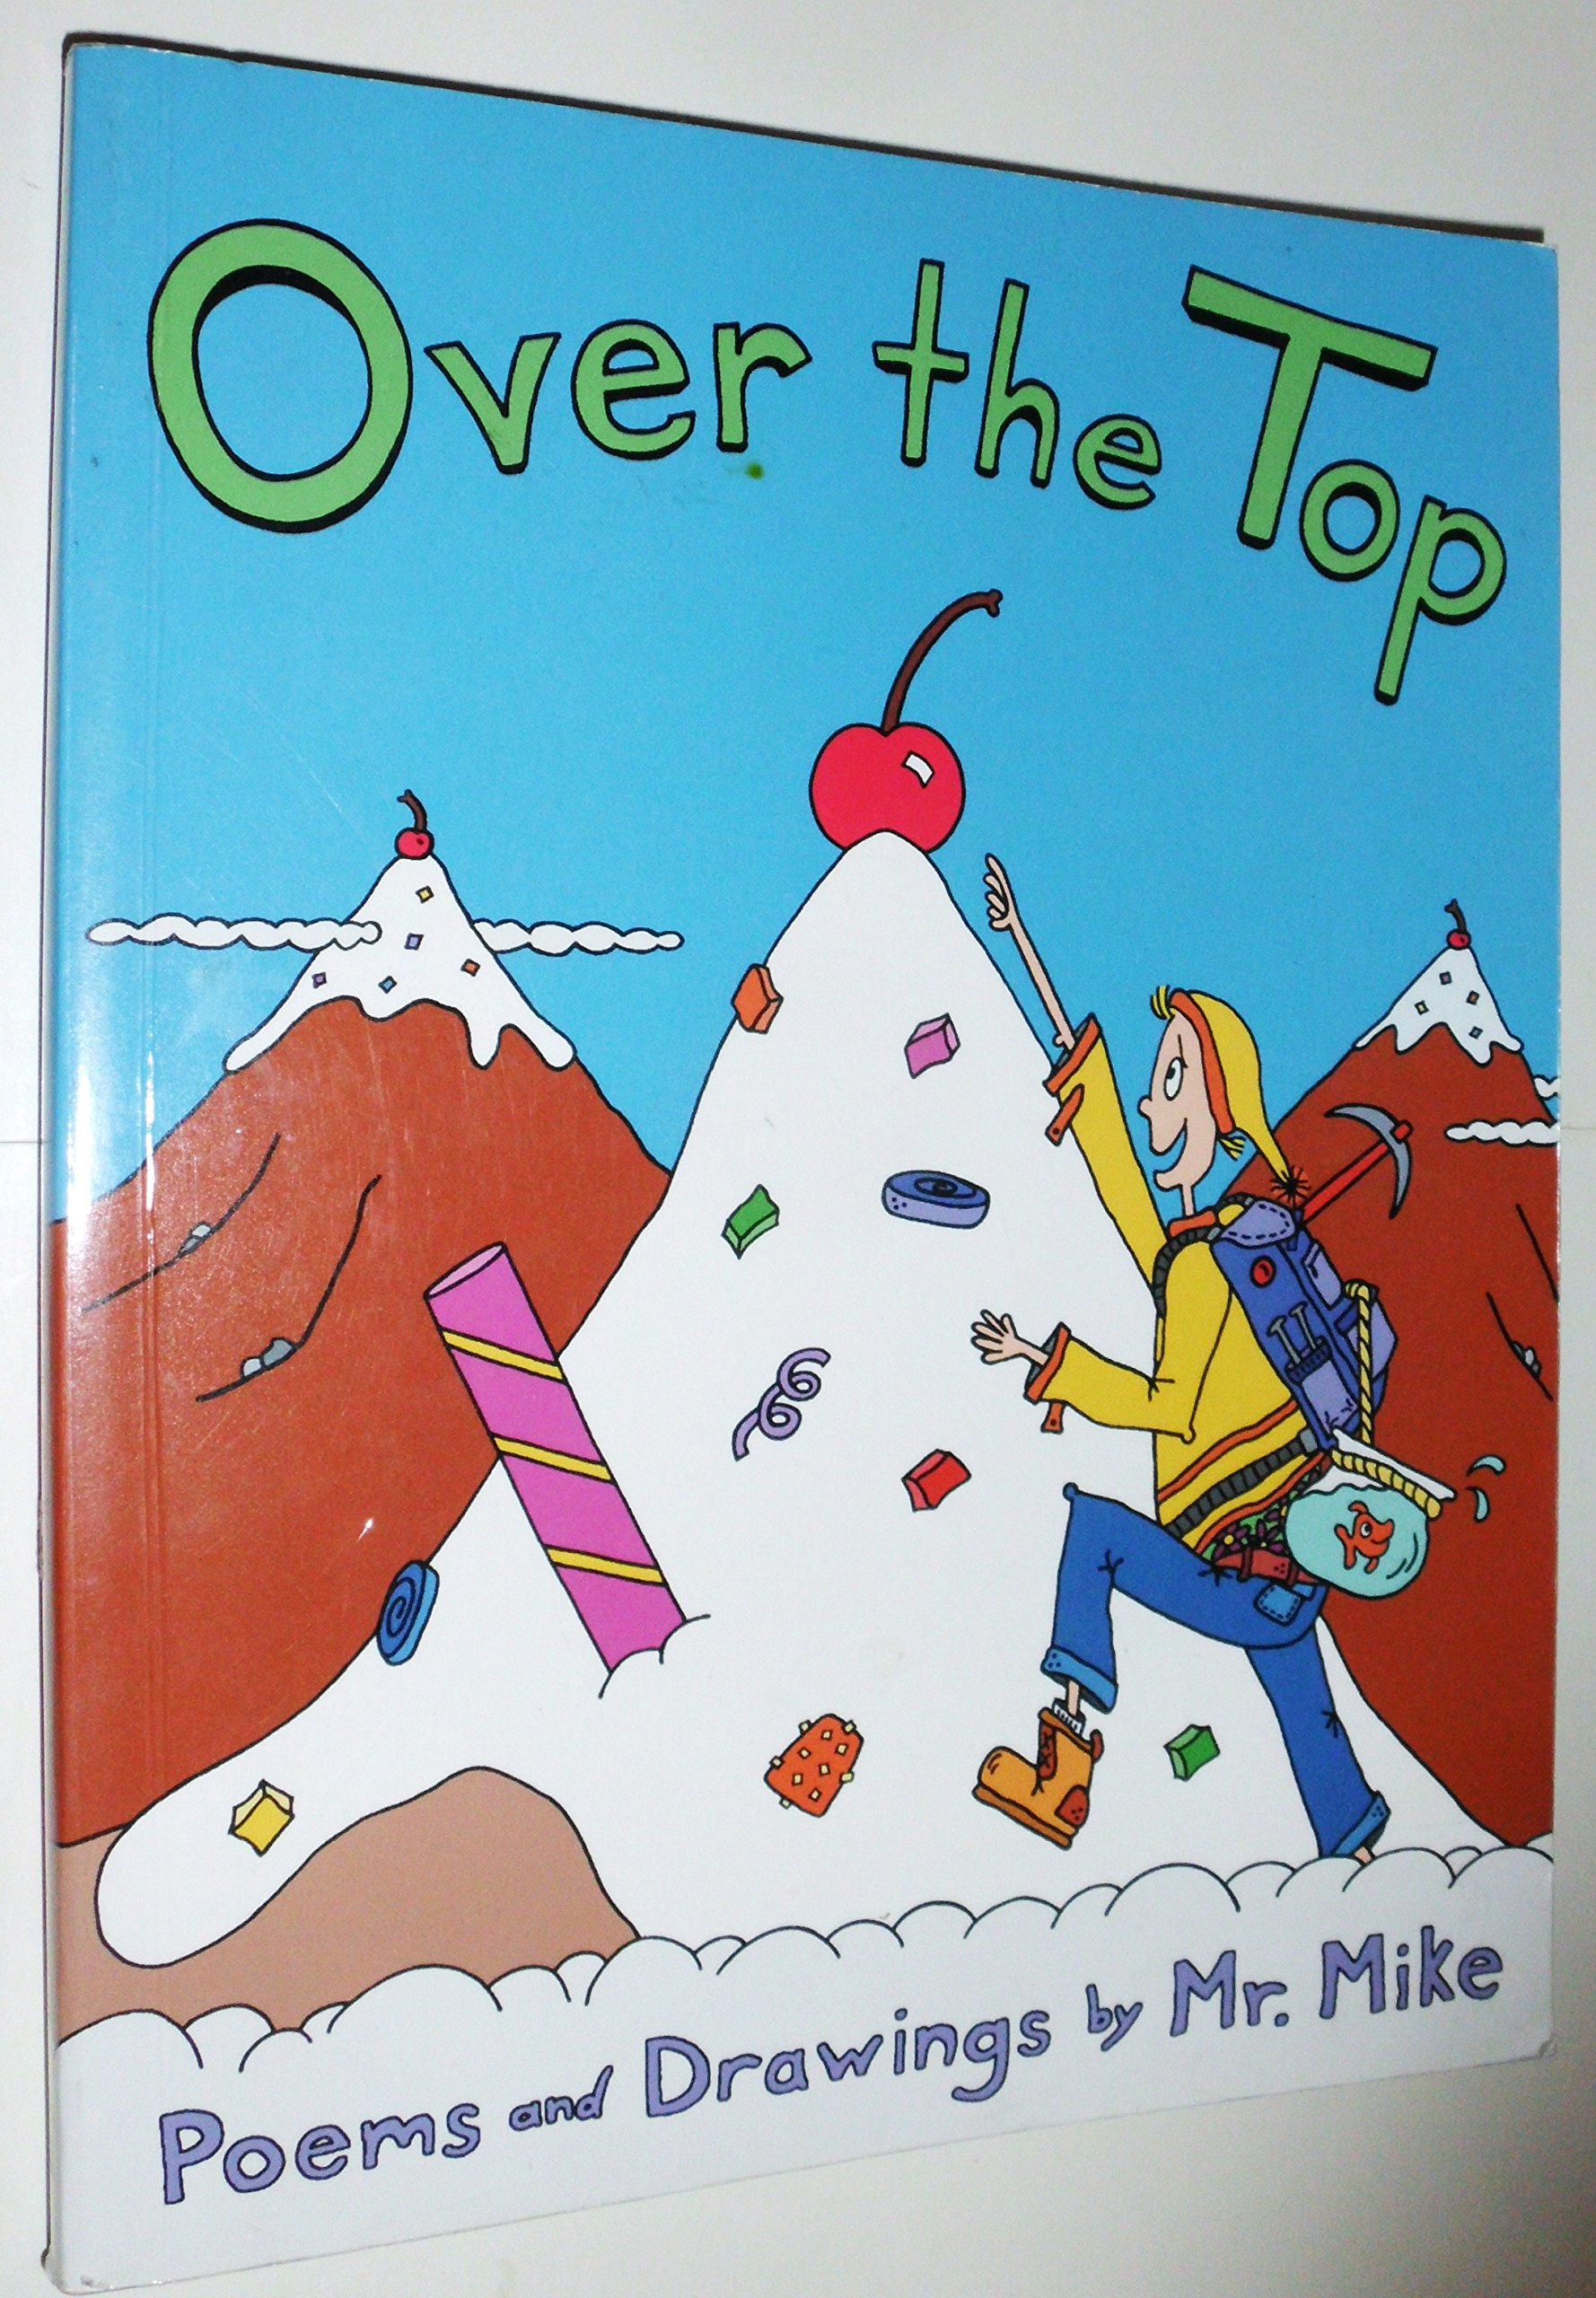 Over the Top: Poems and Drawings by Mr. Mike ebook